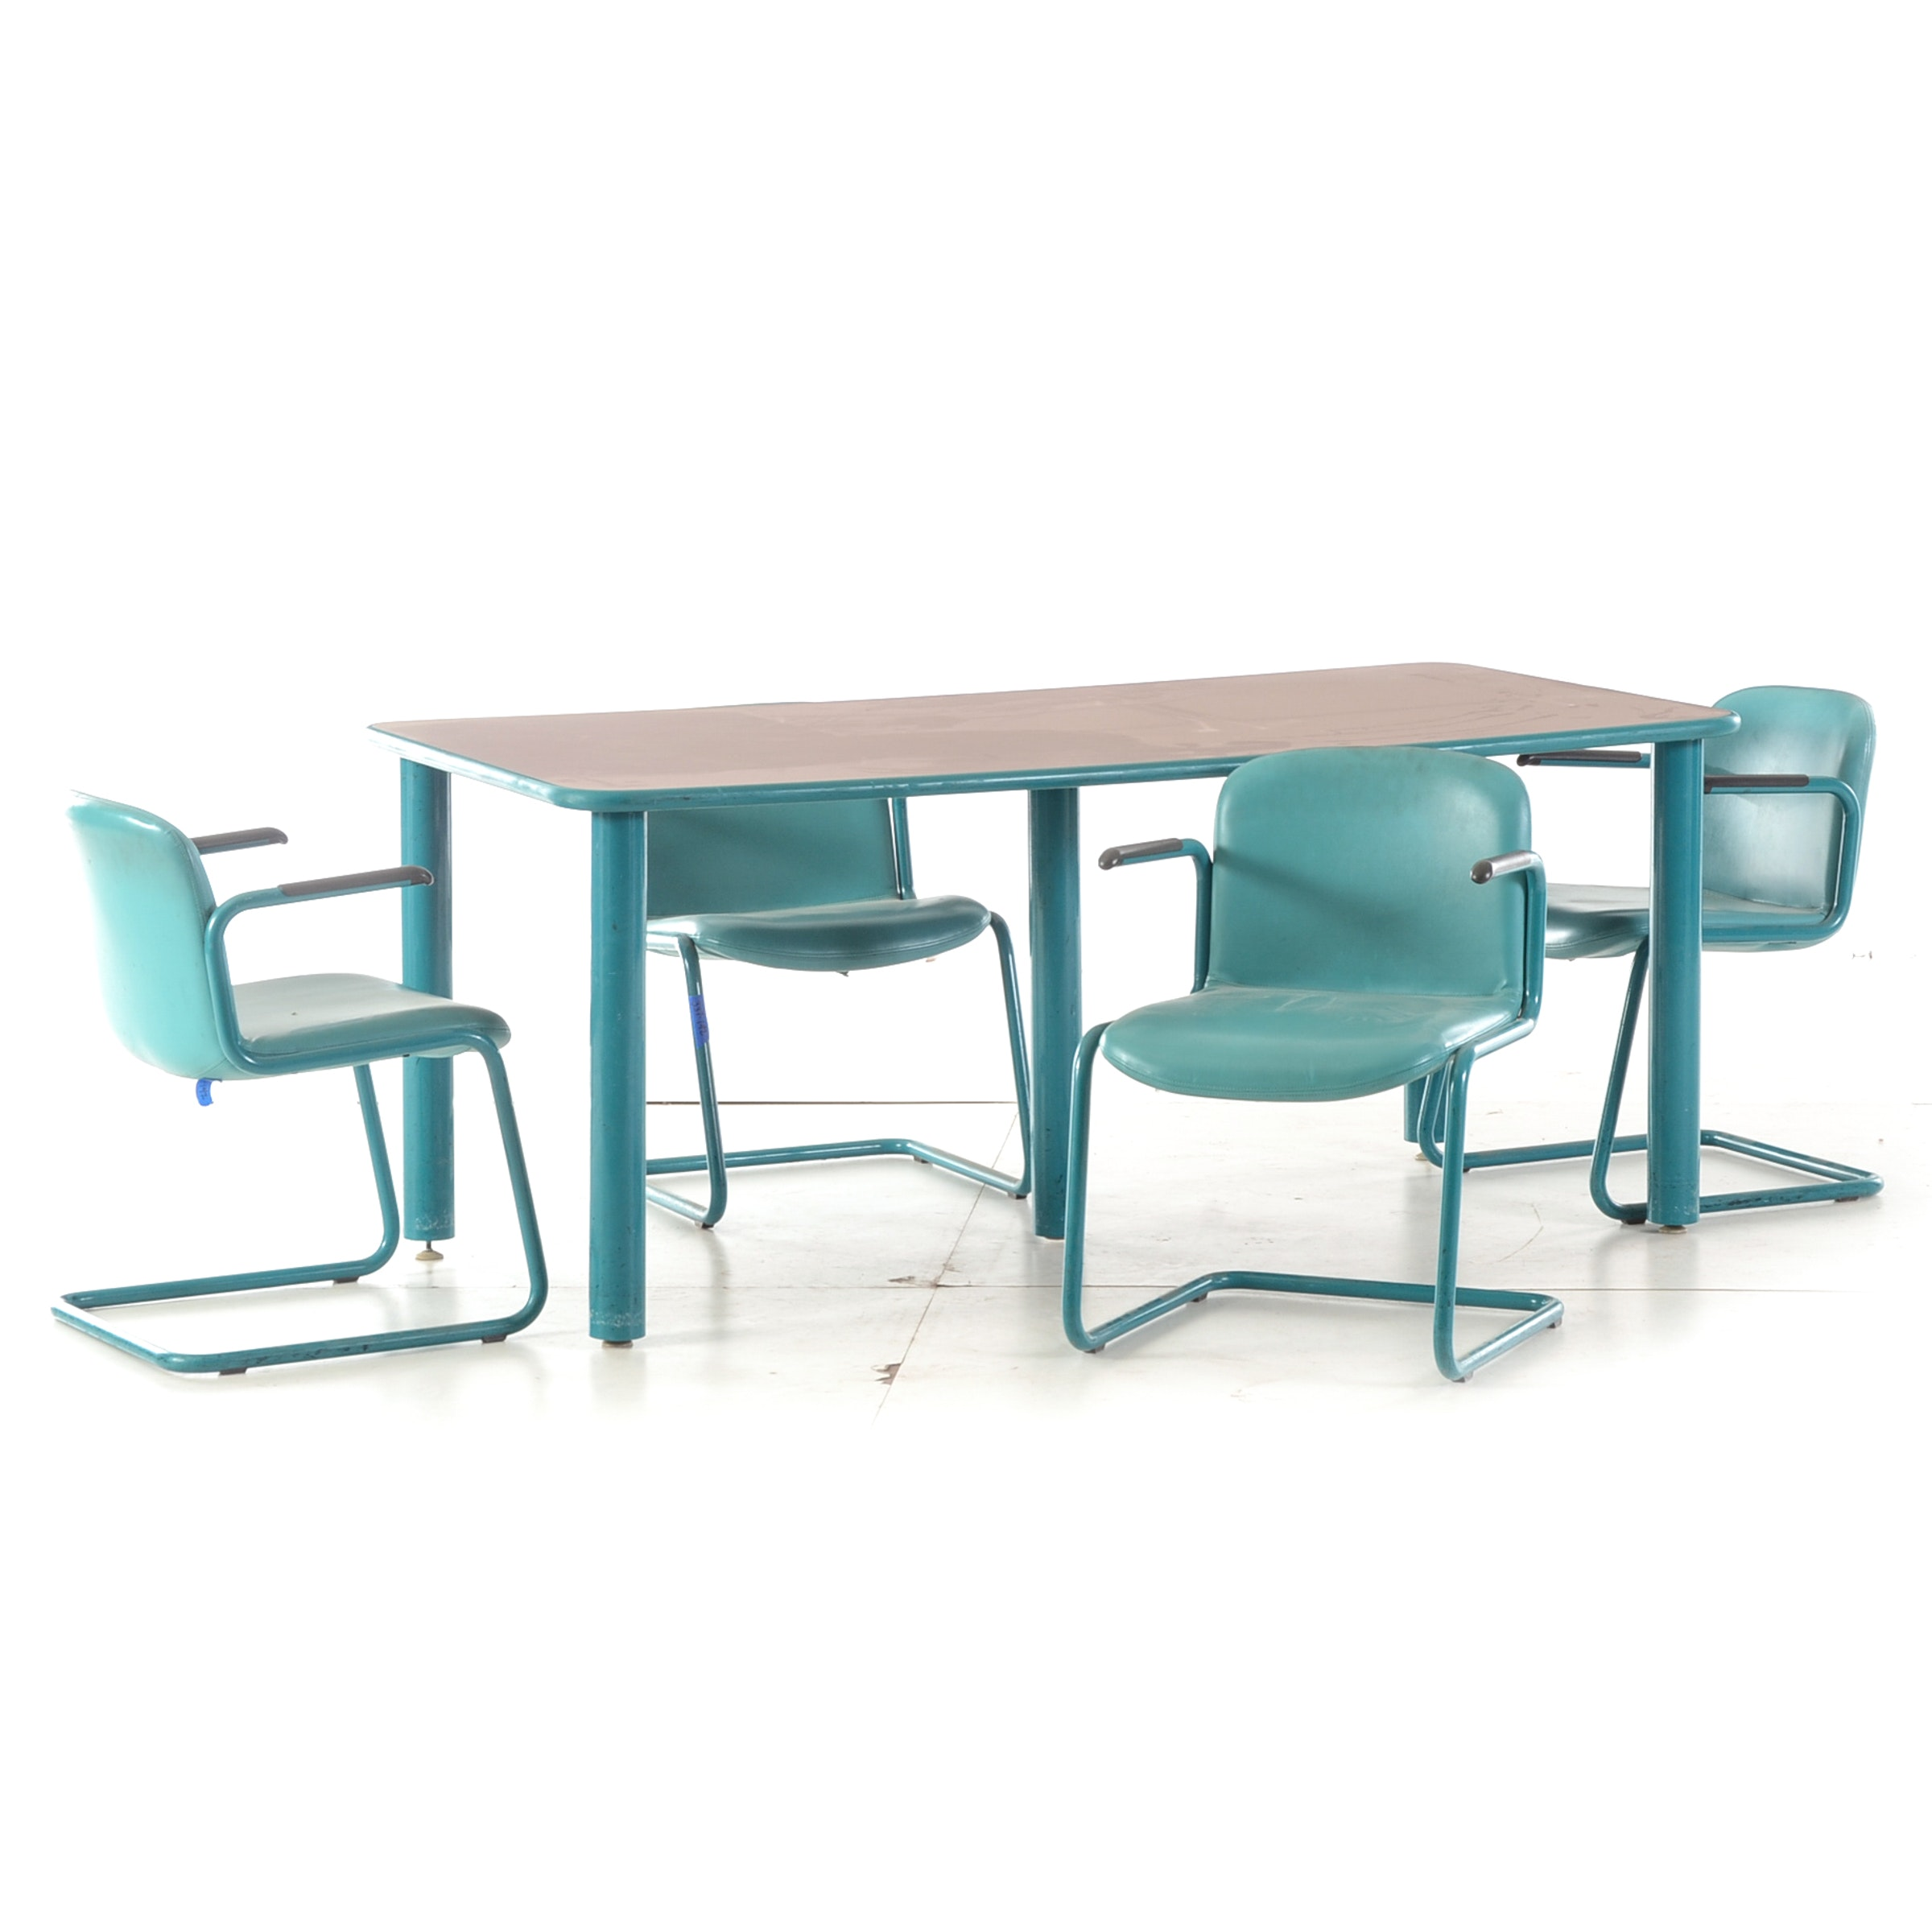 Aqua Metal Table and Four Cantilevered Chairs